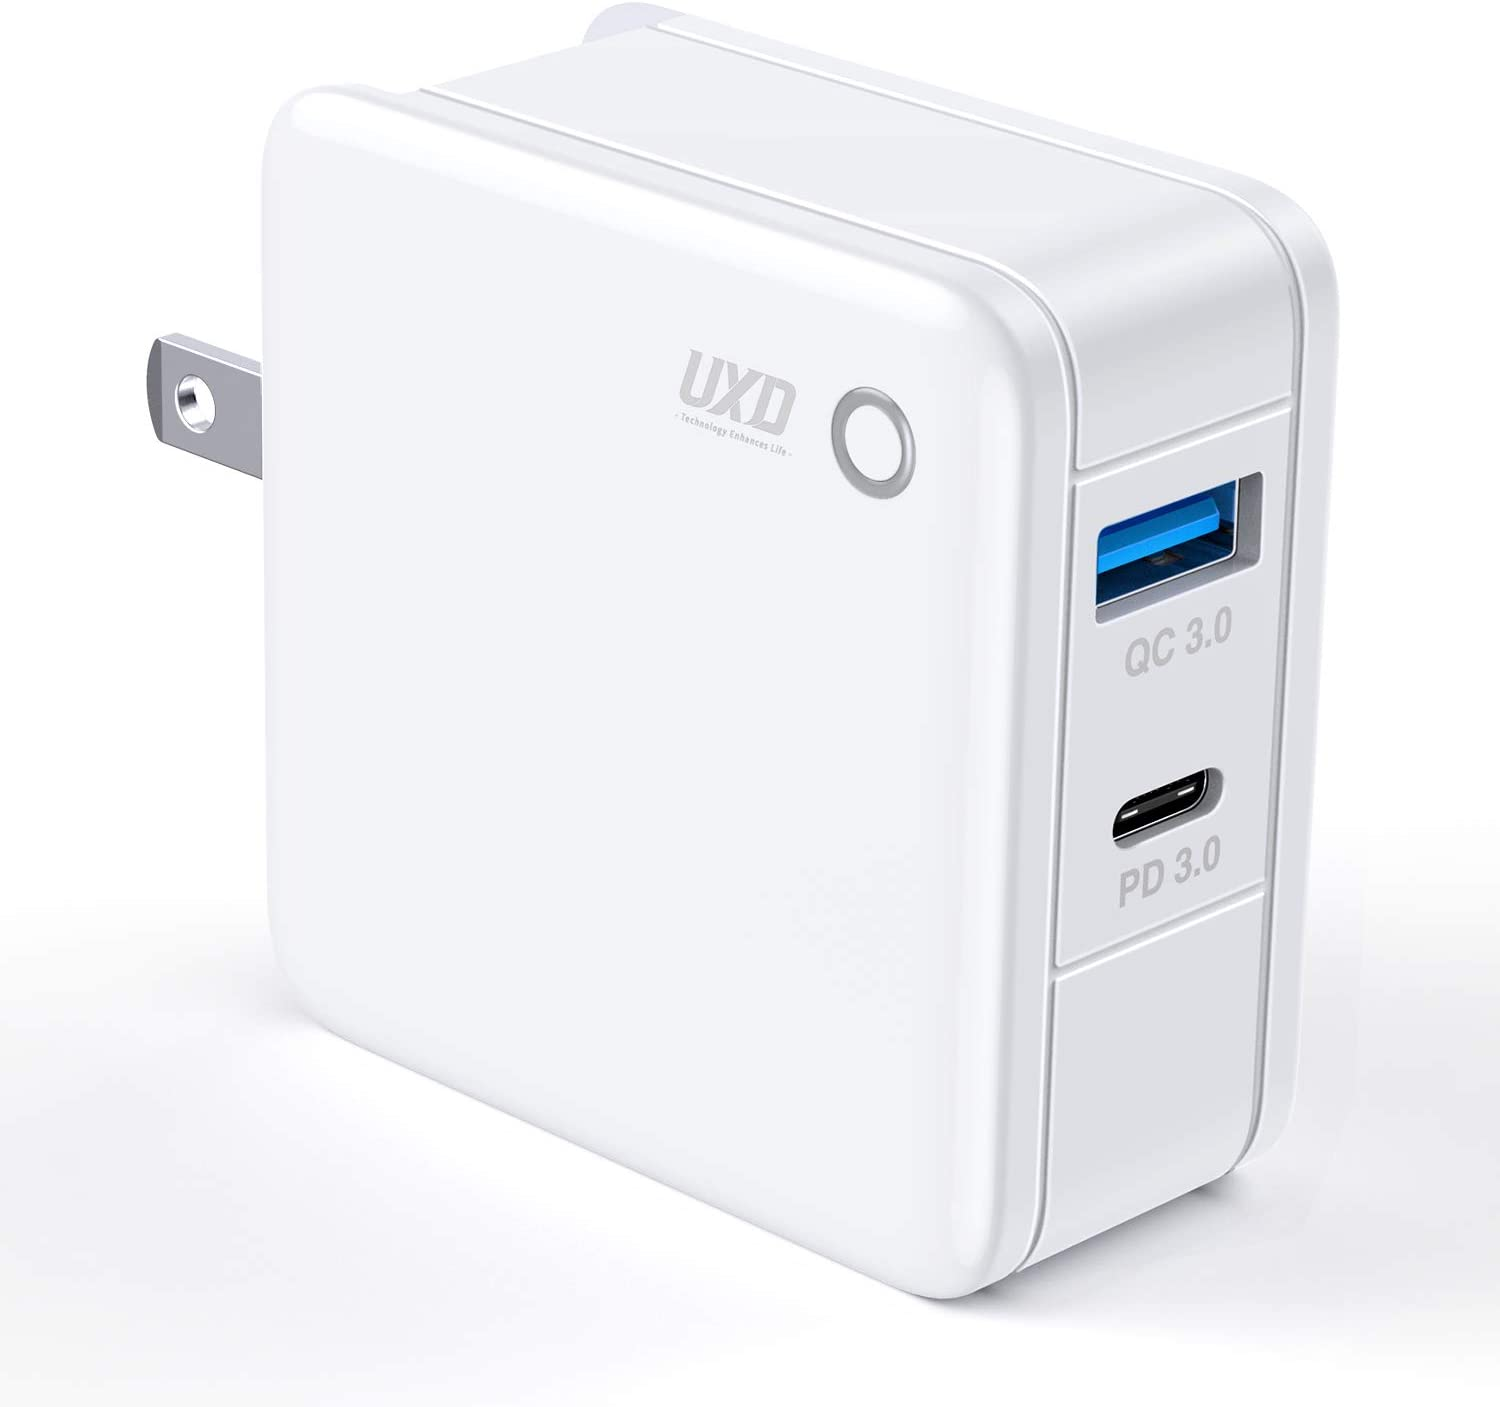 36W USB C Charger, UXD Dual 18W Port Fast Charger with Power Delivery Wall Charger, Home Charger with Foldable Plug for iPad Pro, iPhone 11/11 Pro/XS/Max/XR/X, Galaxy, etc.